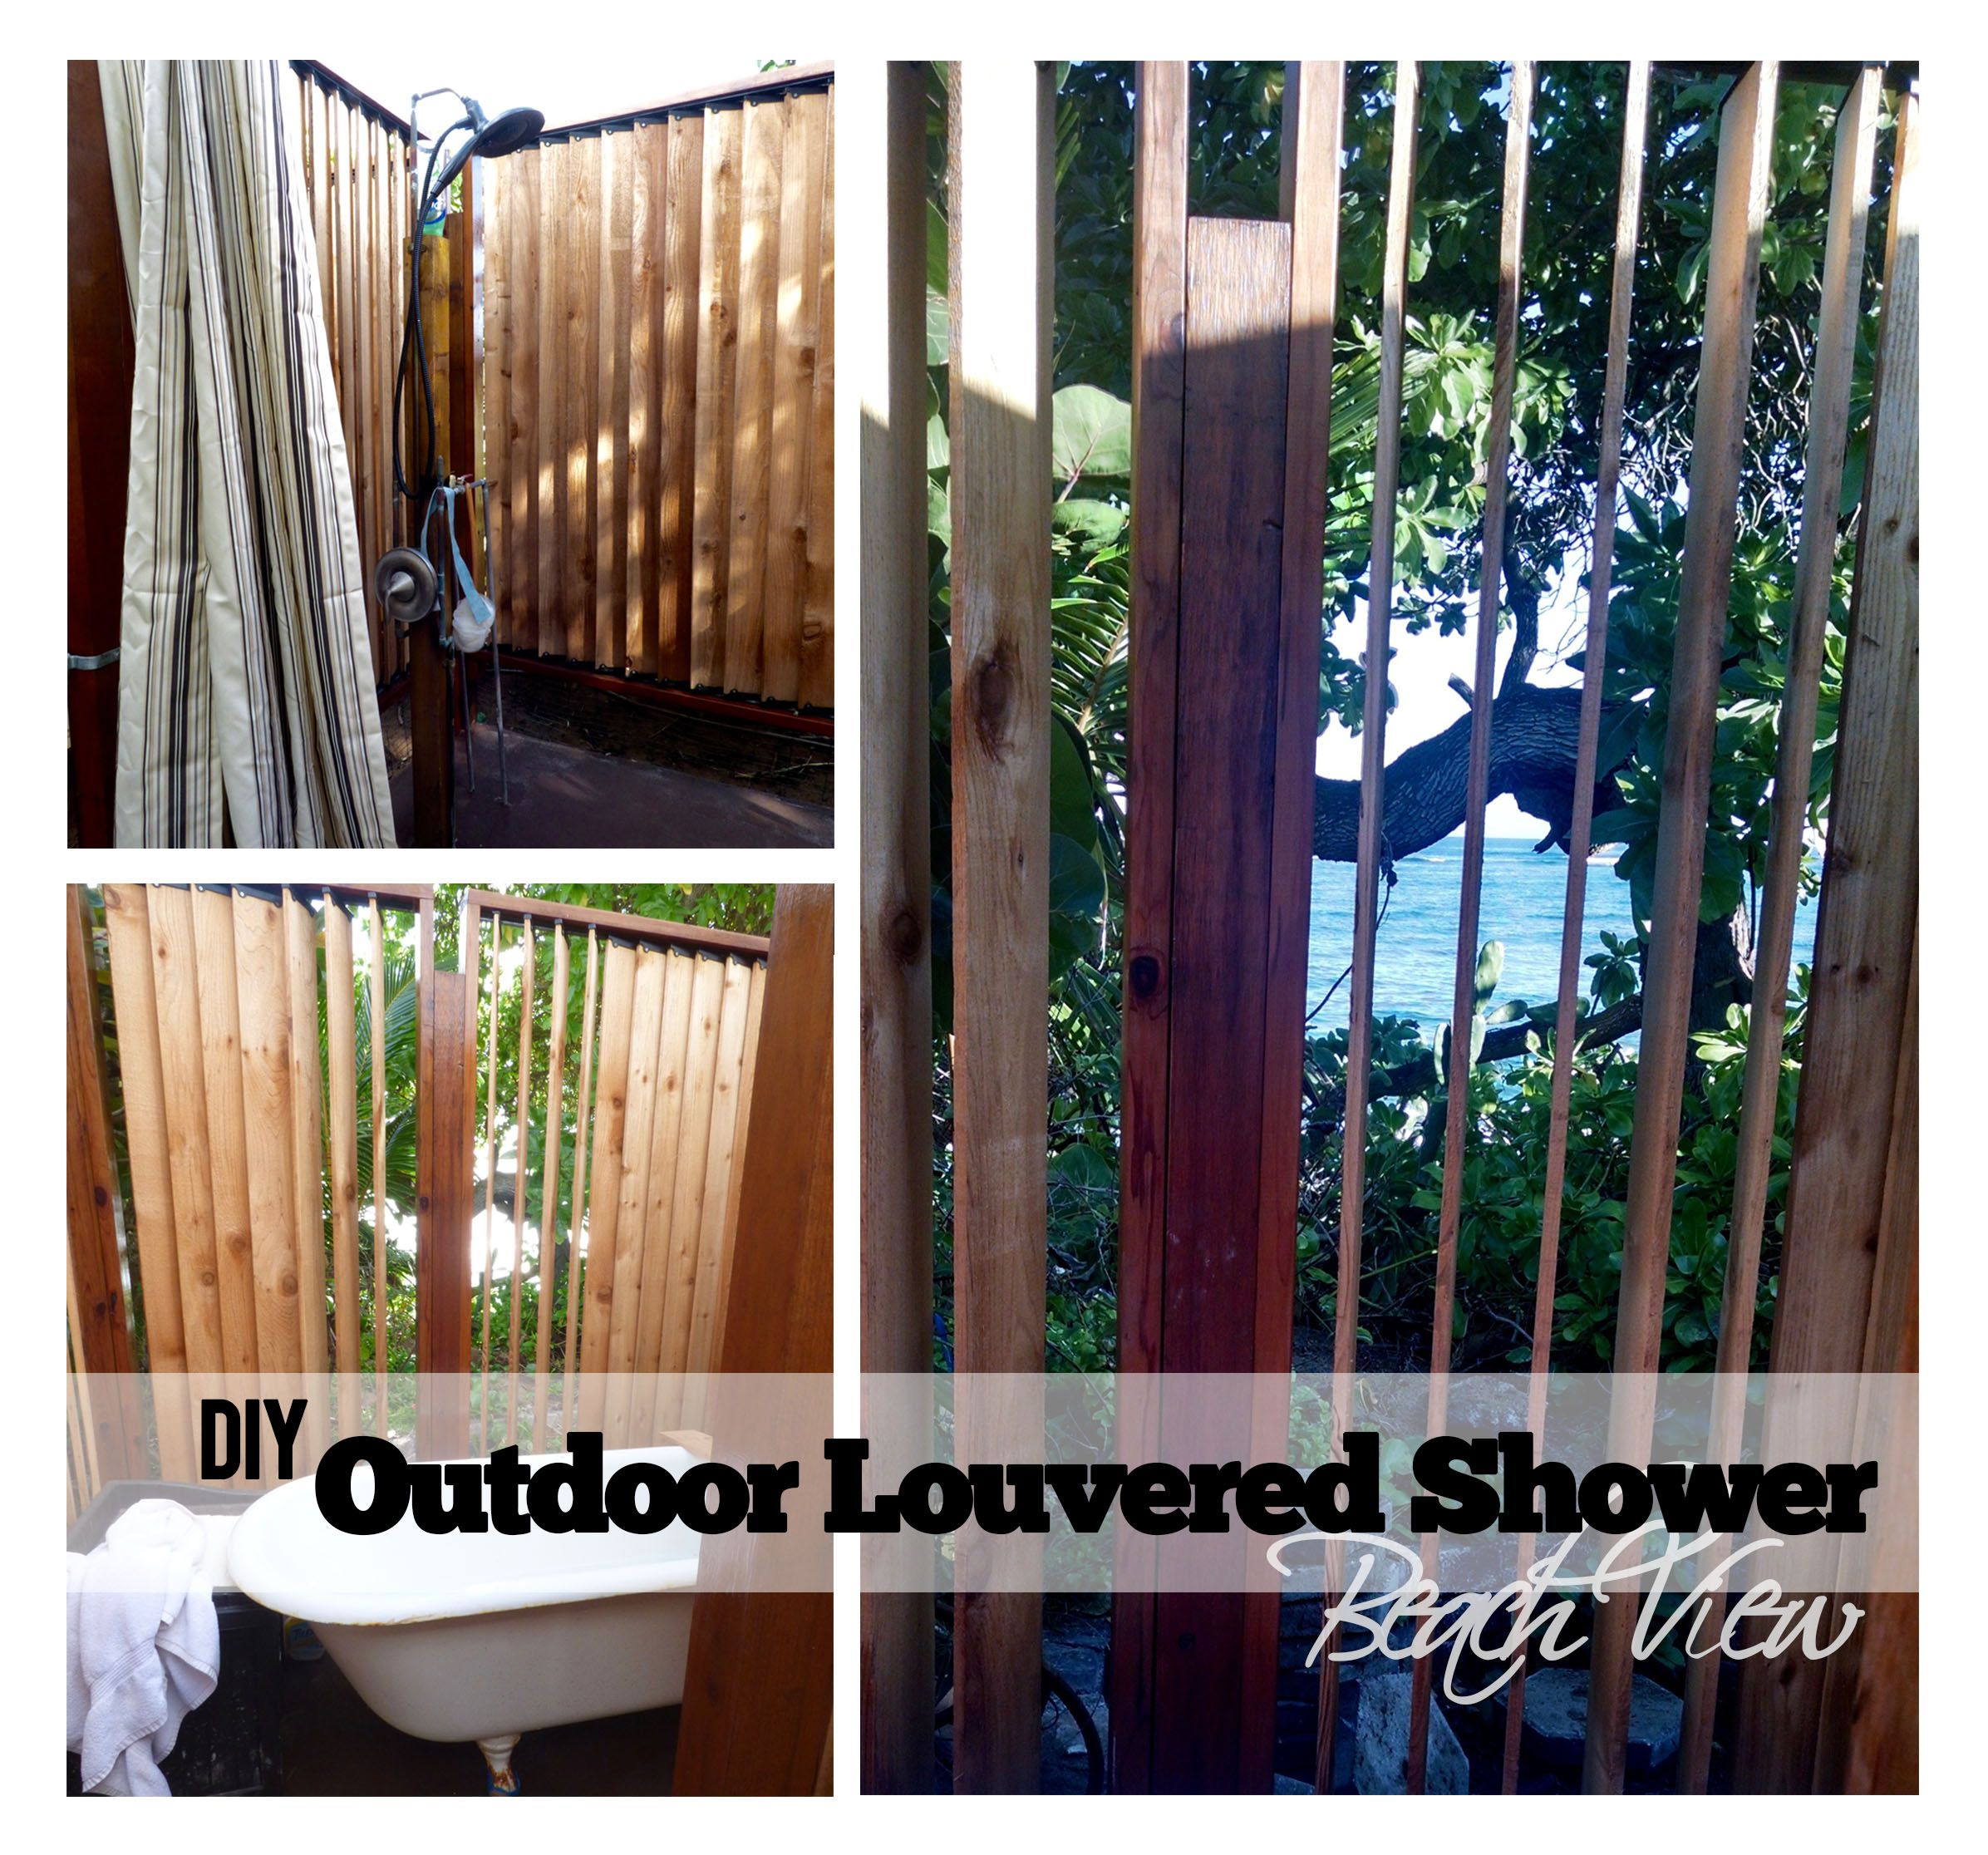 DIY Outdoor Louvered Shower, Perfect For A Backyard With A